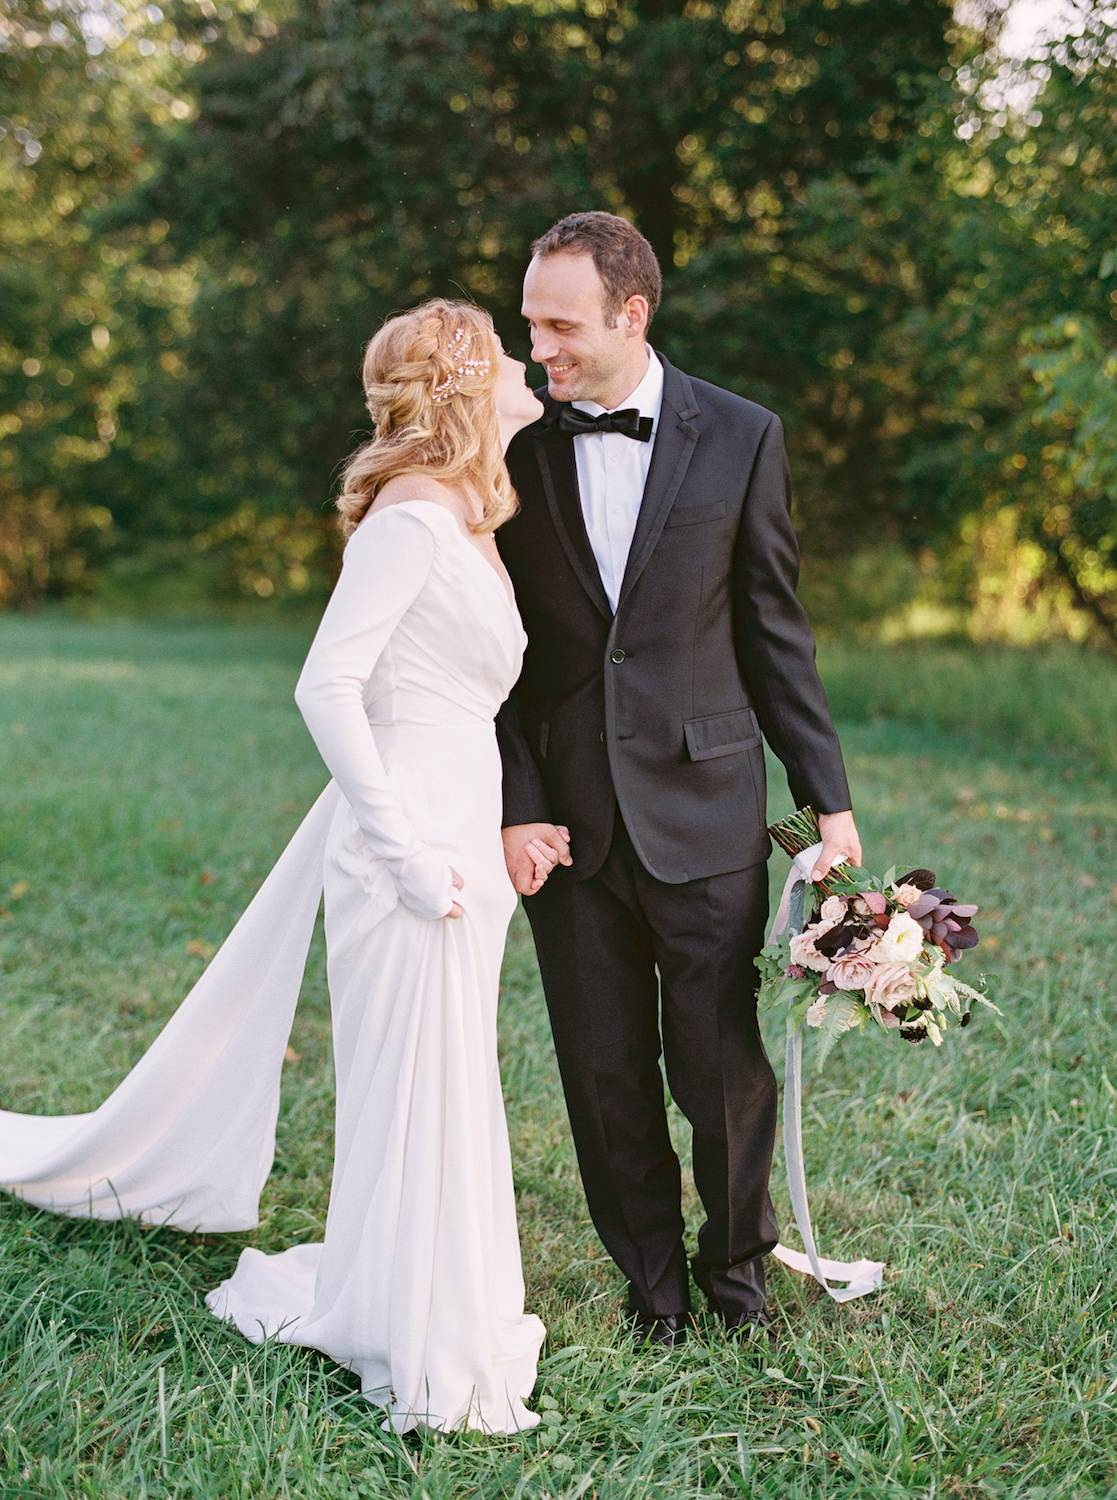 A Berry-Toned Fall Elopement